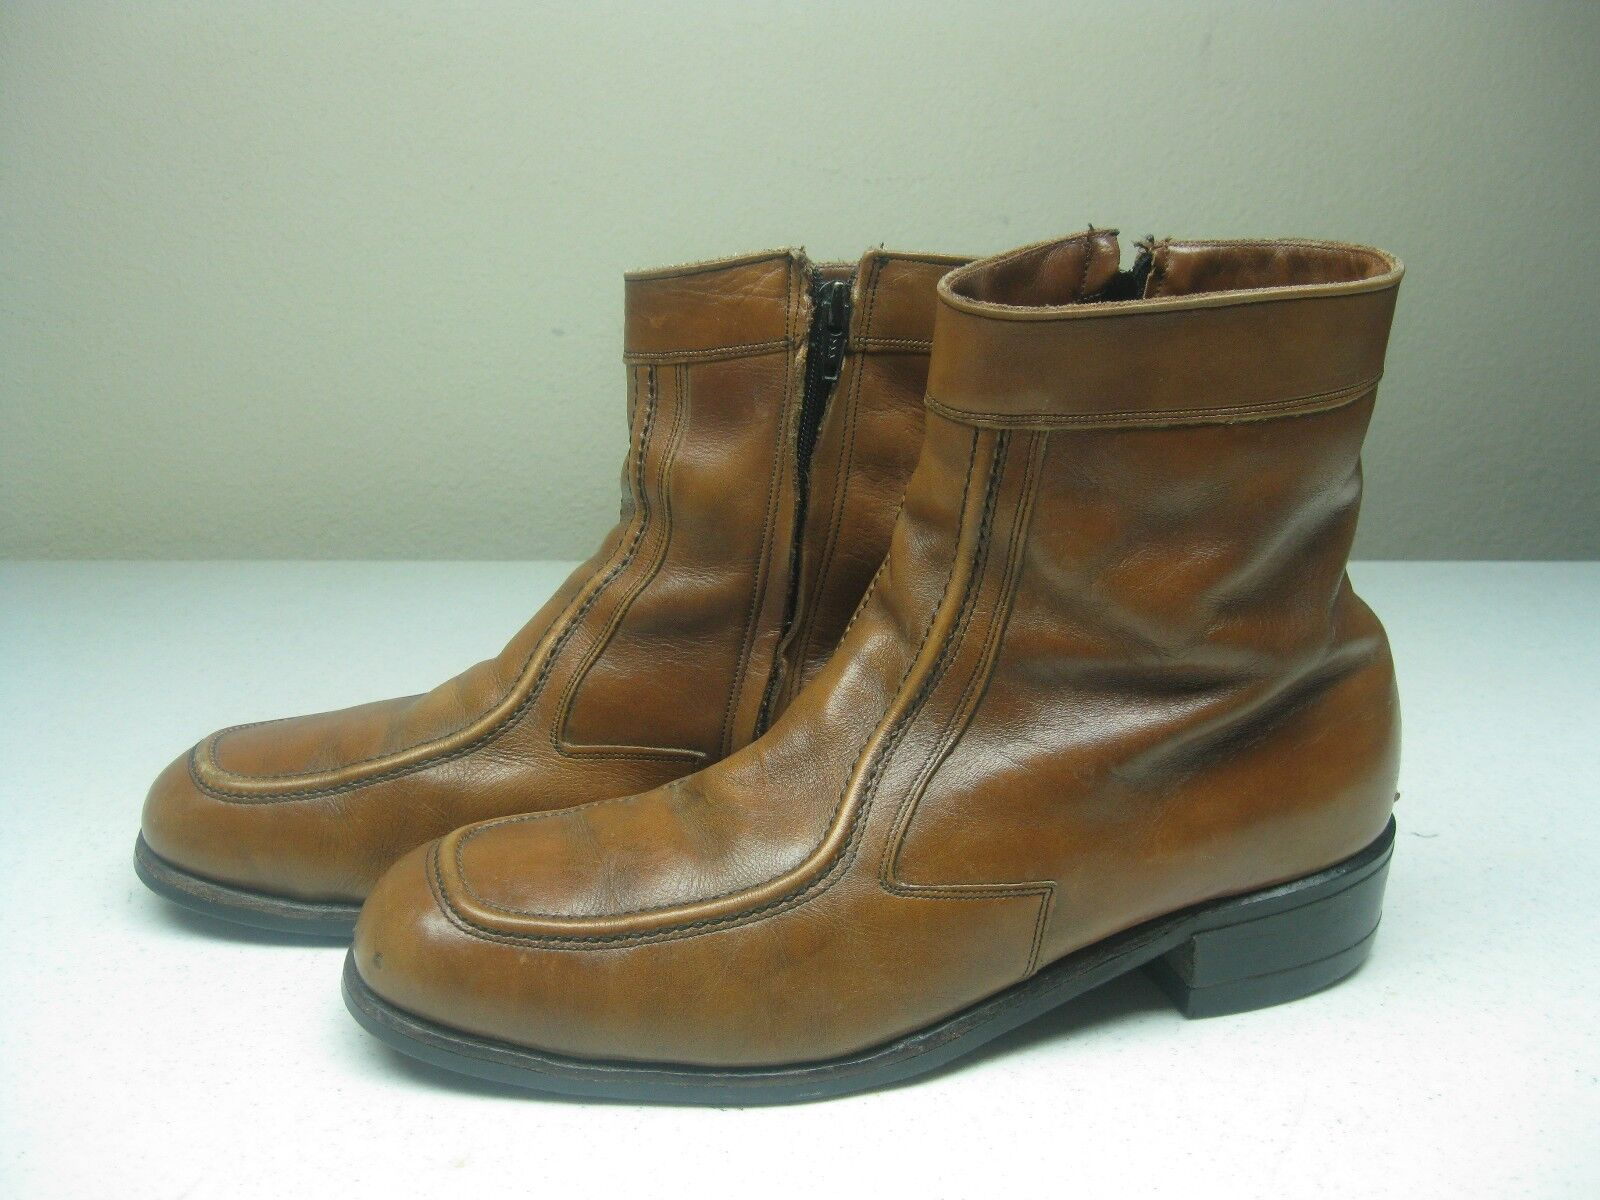 VINTAGE BROWN DISTRESSED USA STEEL TOE ROCKABILLY BEATLE BOOTS 9.5 D